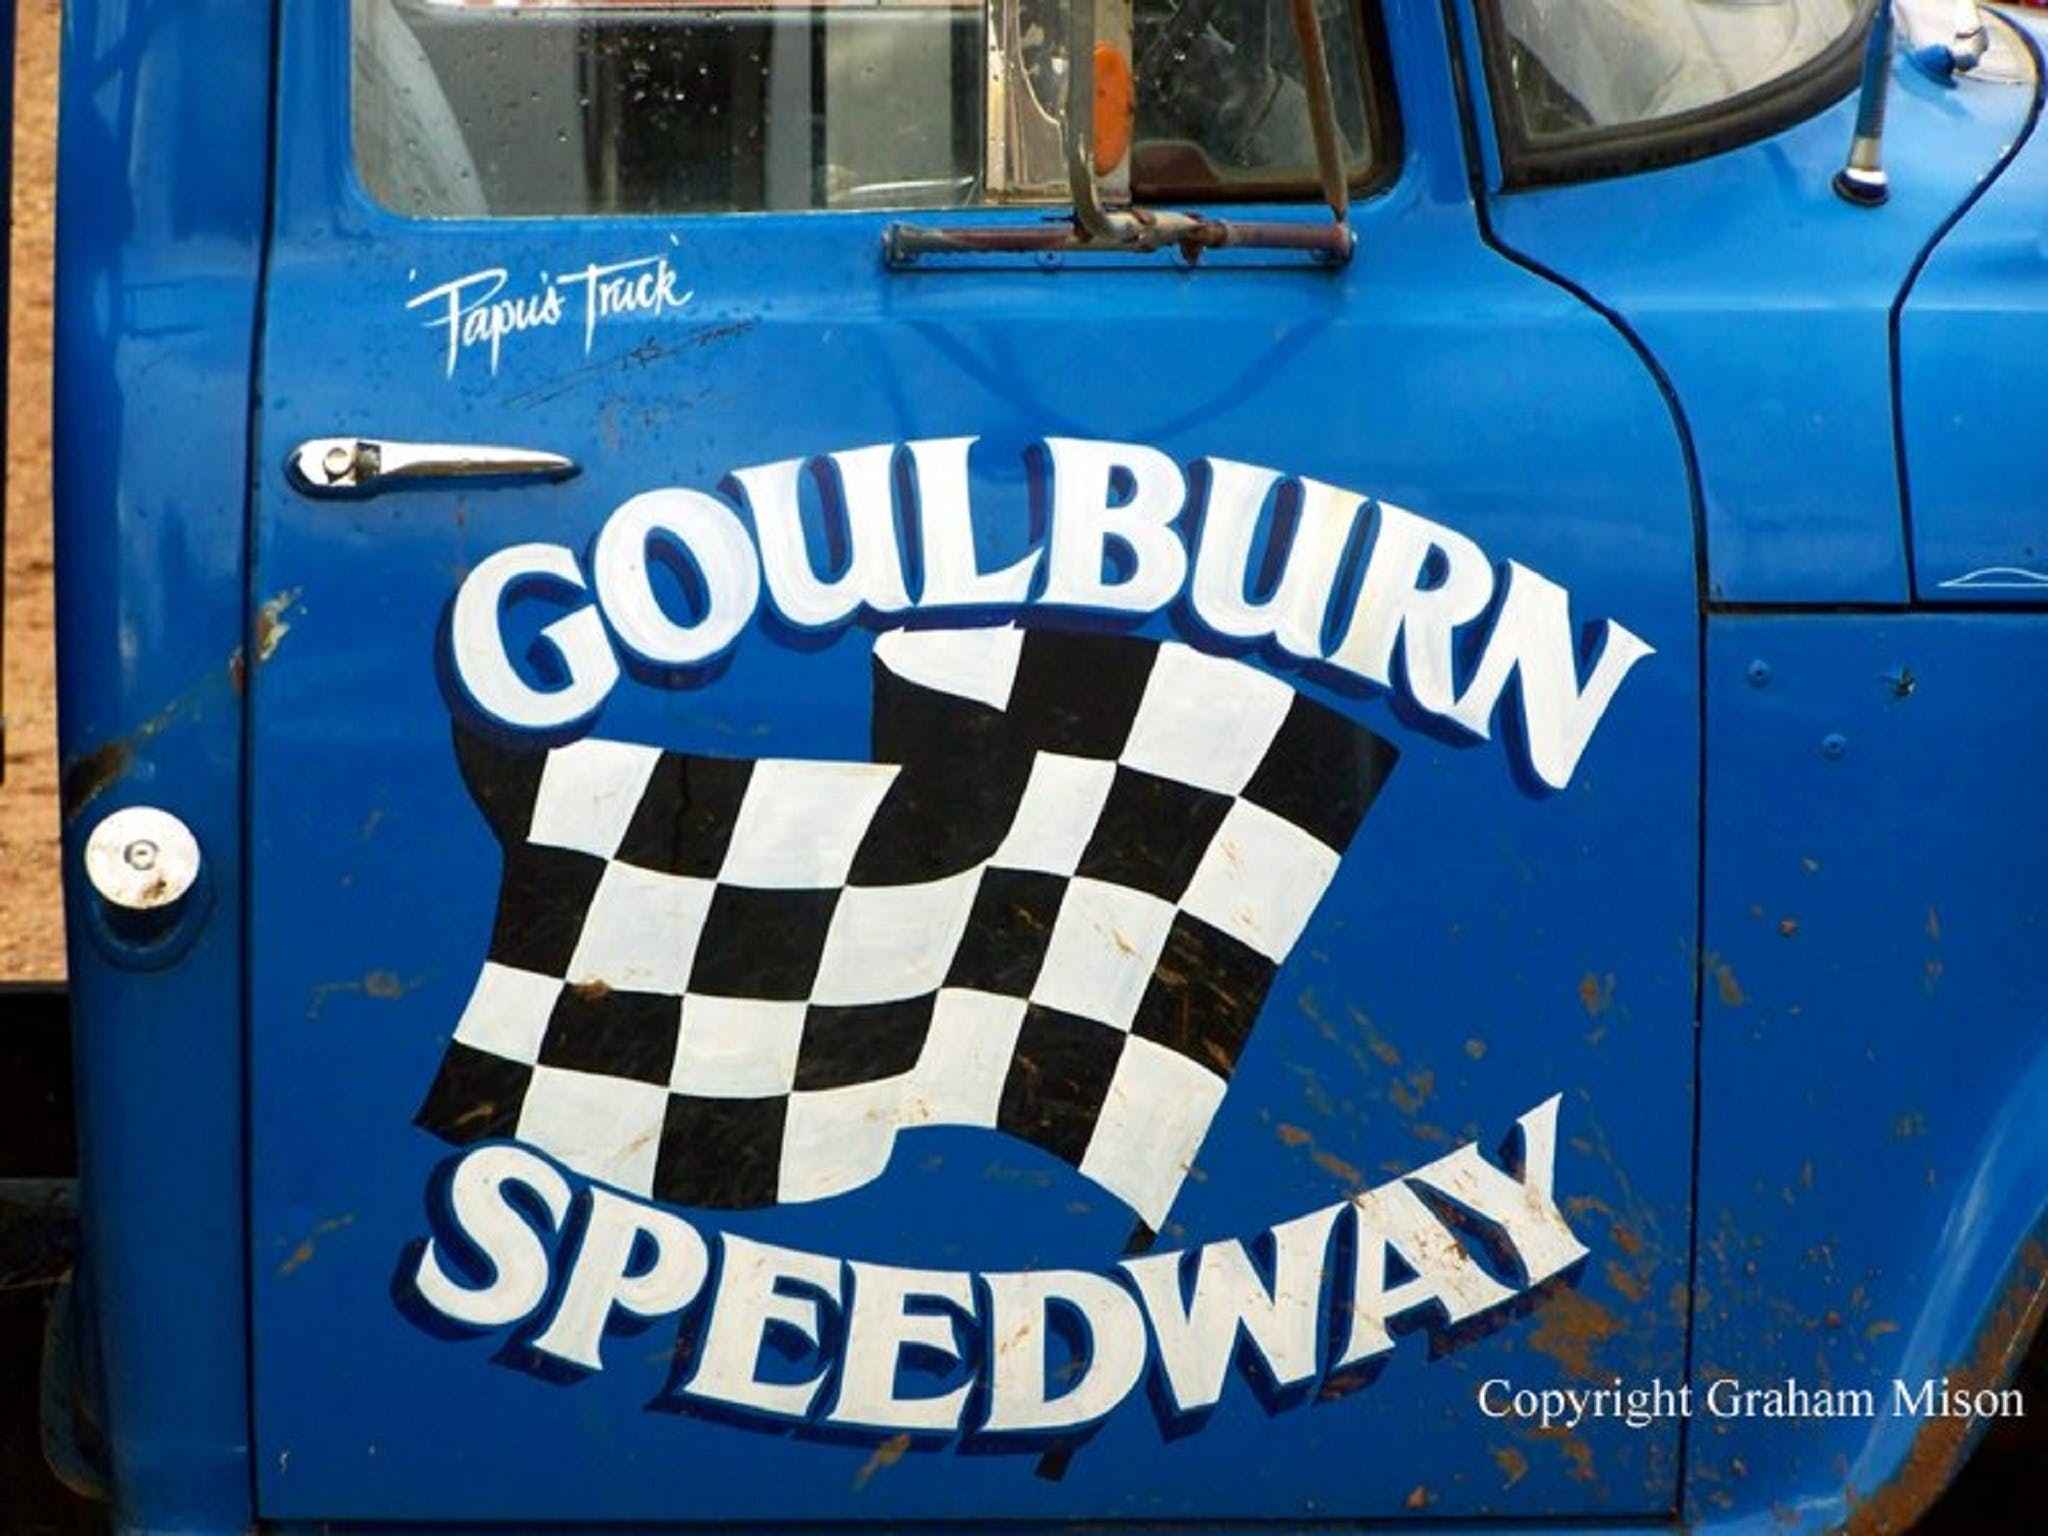 50 years of racing at Goulburn Speedway - Lightning Ridge Tourism